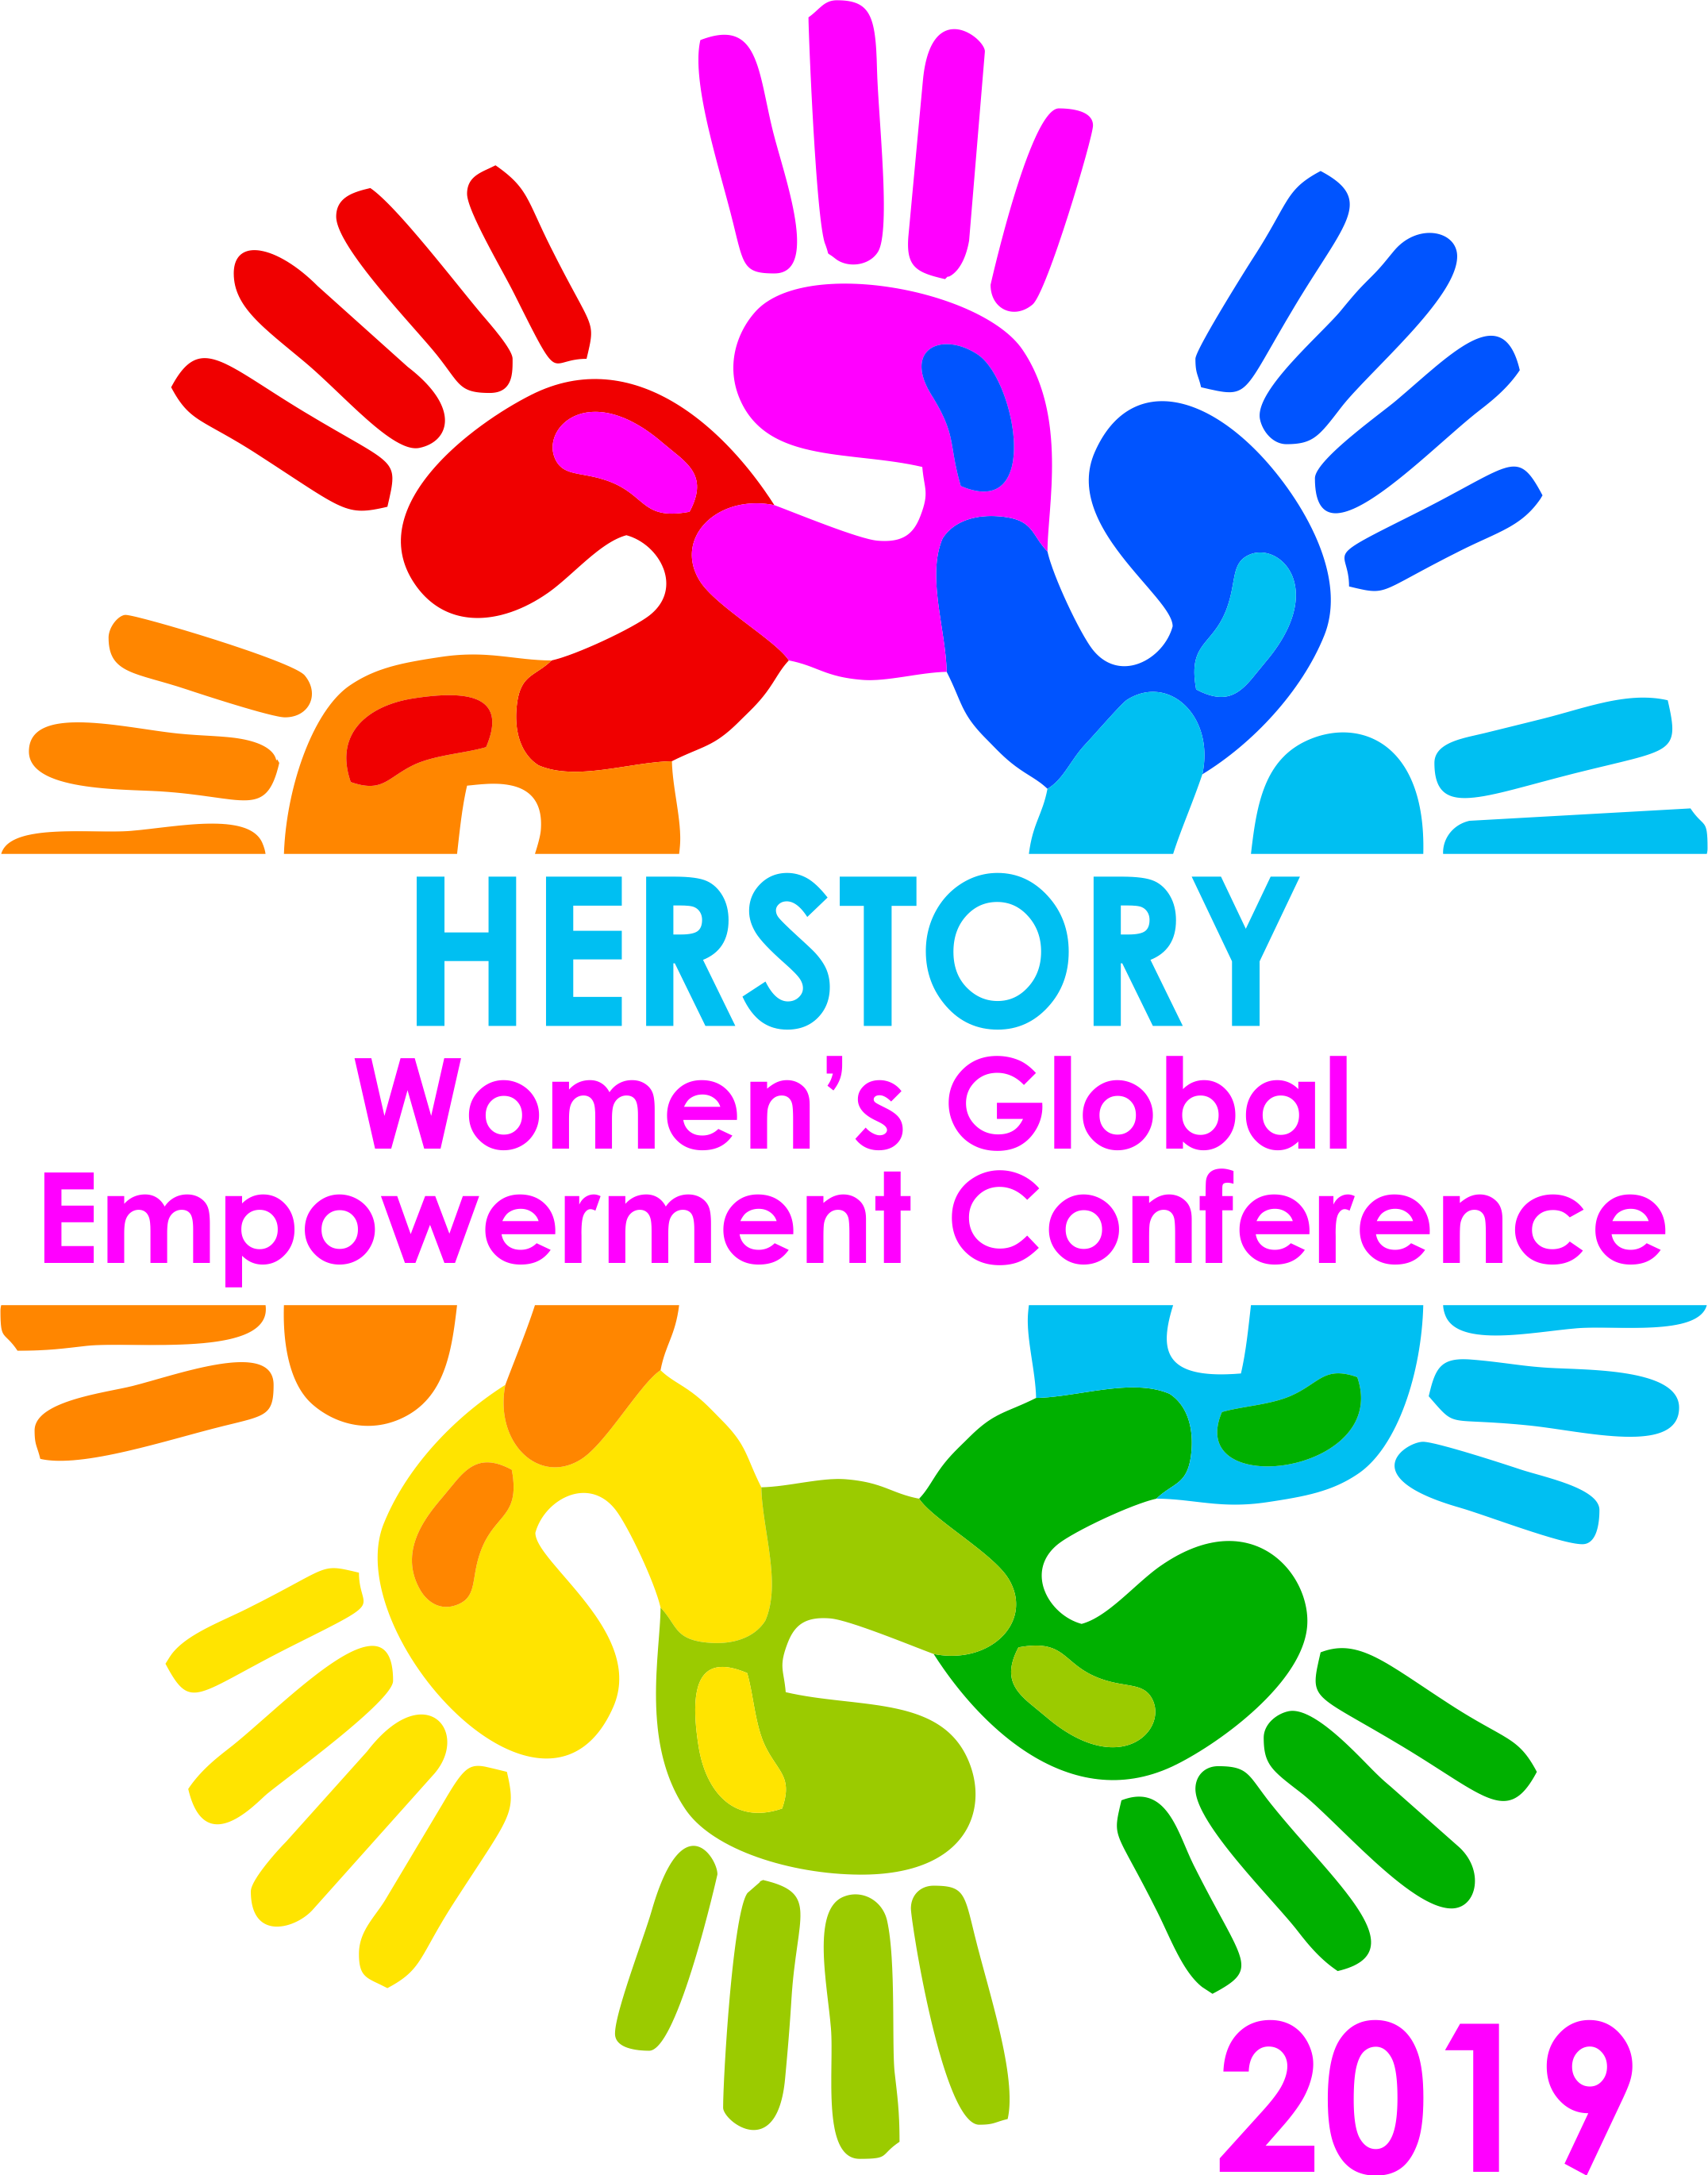 HerStory Women's Global Empowerment Conference Audition – Andrea Putting